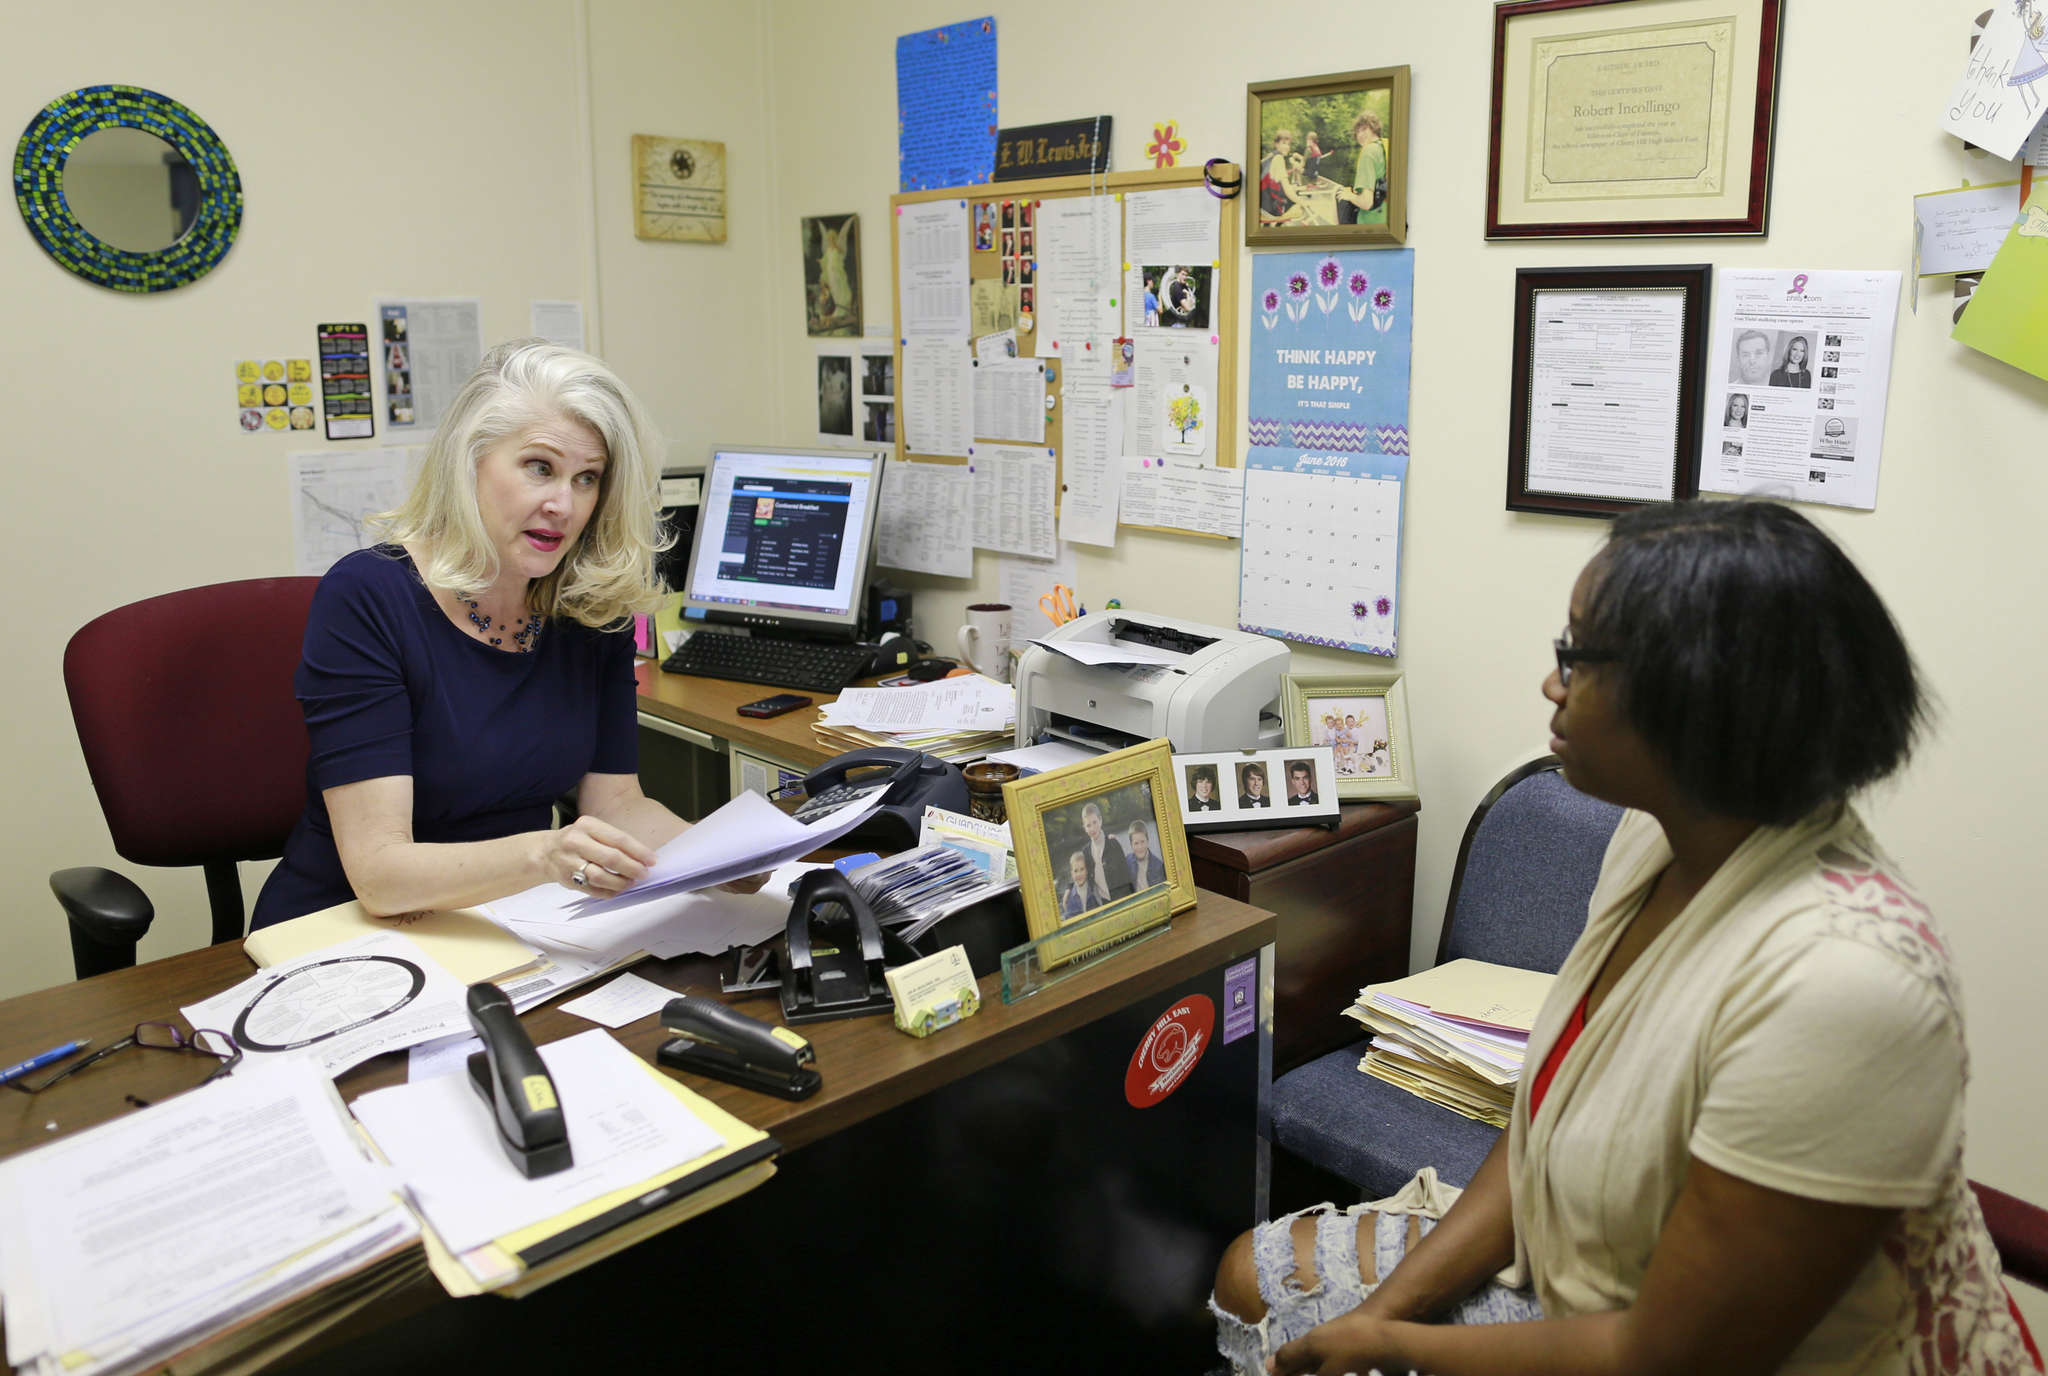 Lisa M. Incollingo meets with client Brande Houston at the Camden Center for Law and Social Justice. The center helped Houston get a restraining order against an ex-boyfriend.